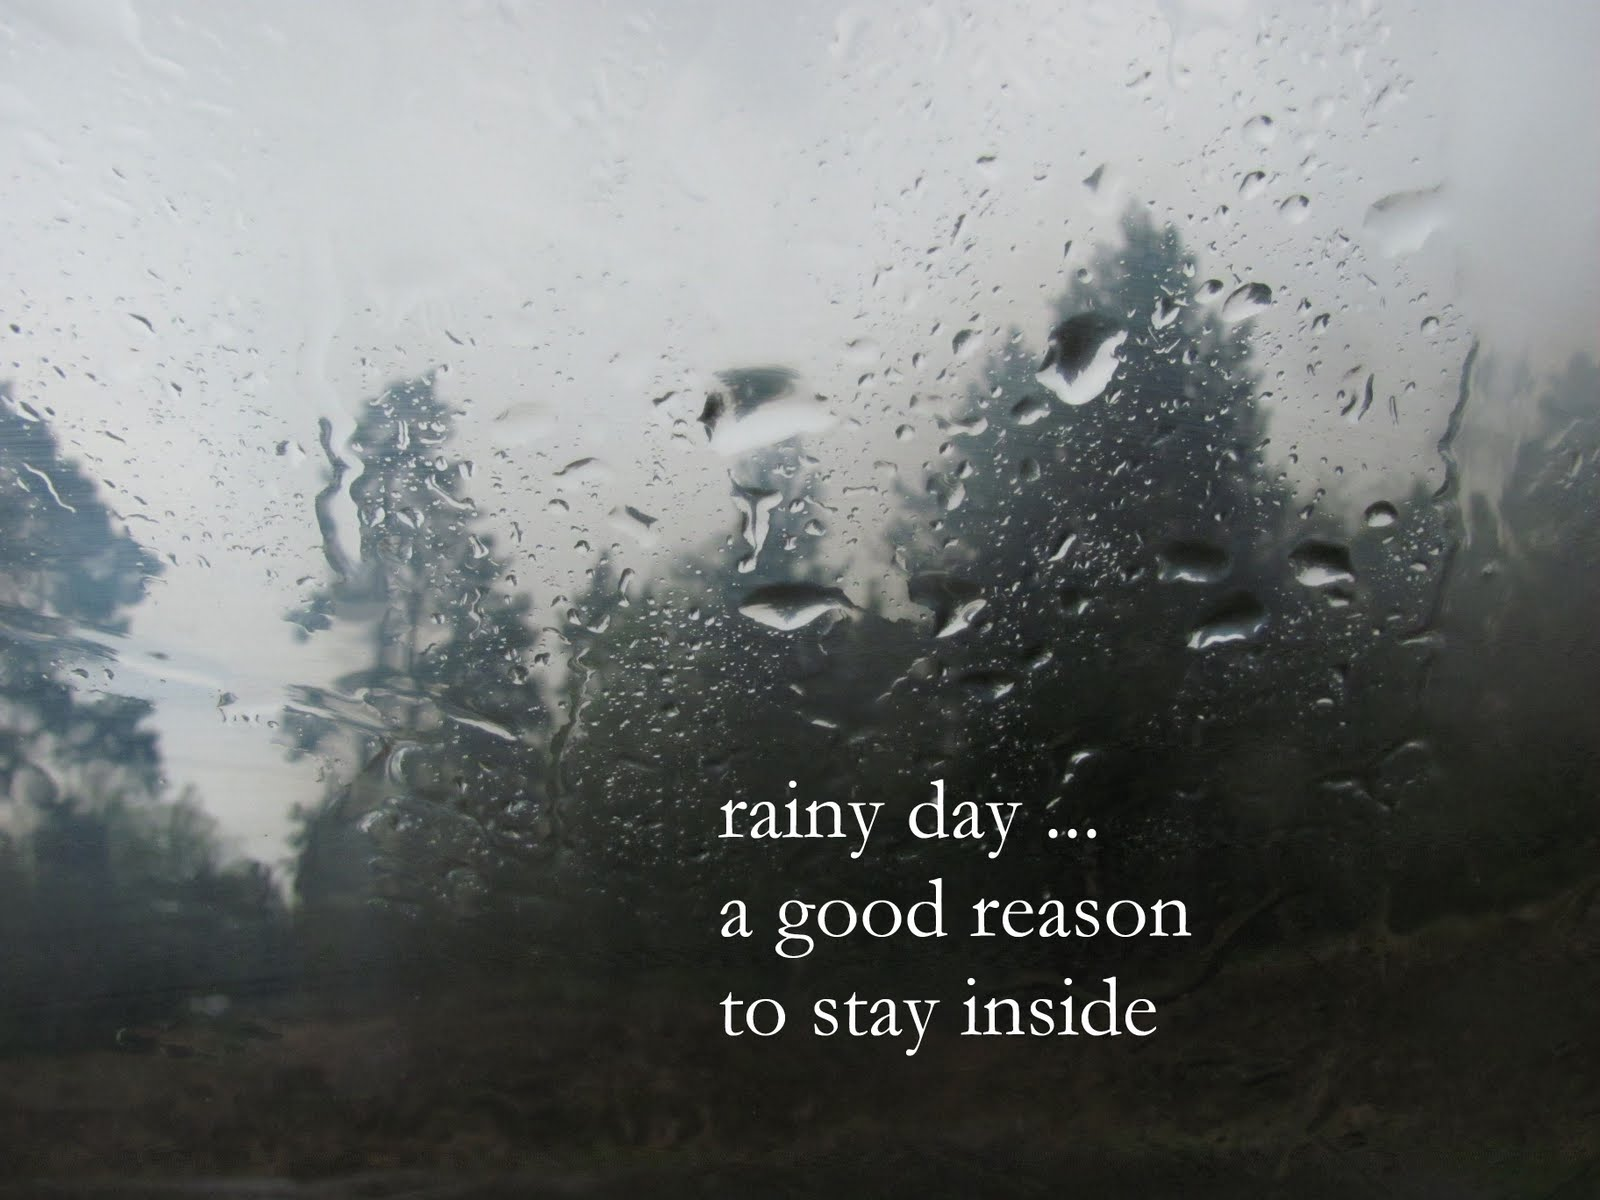 rainy days good